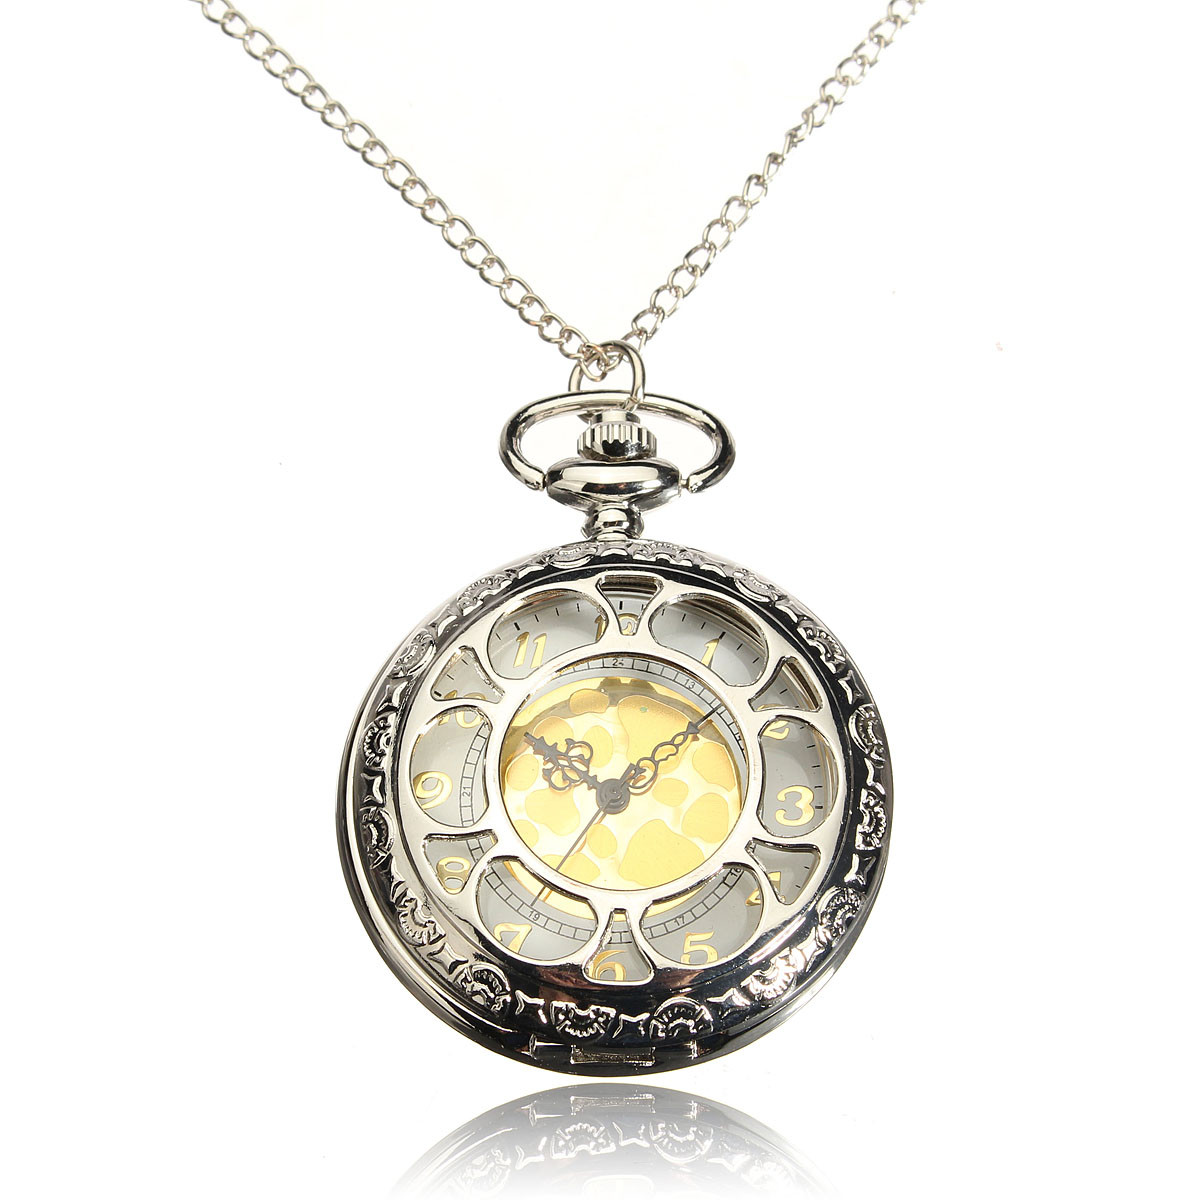 Antique Hollow Petals Quartz Pocket Watch